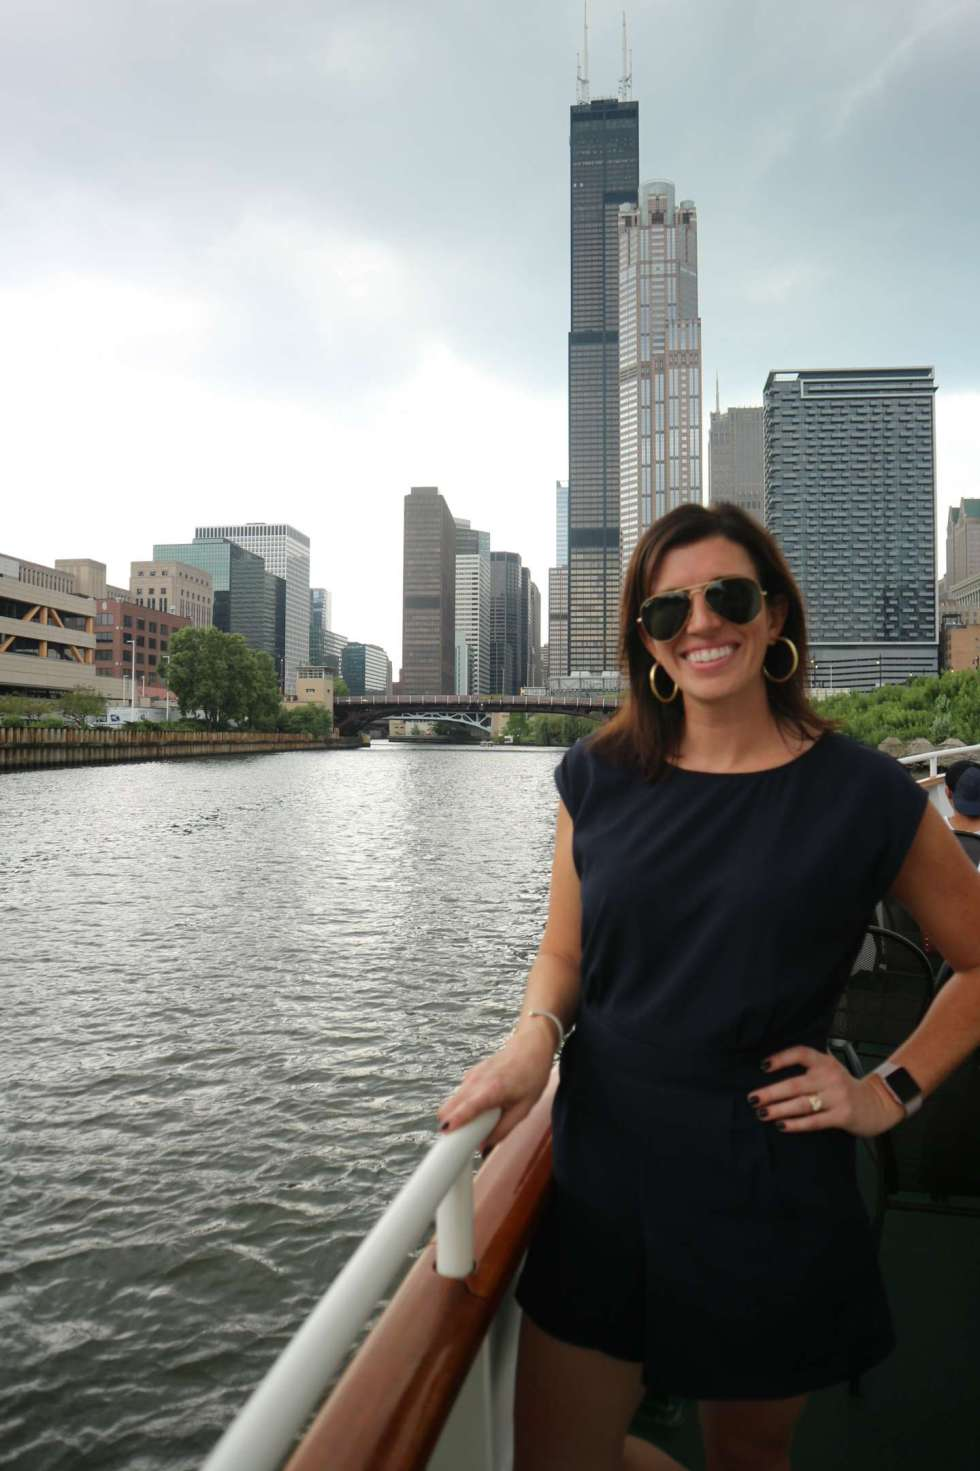 My Favorite Summer Rompers from Chicago by NC fashion blogger I'm Fixin' To - I'm Fixin' To - @mbg0112